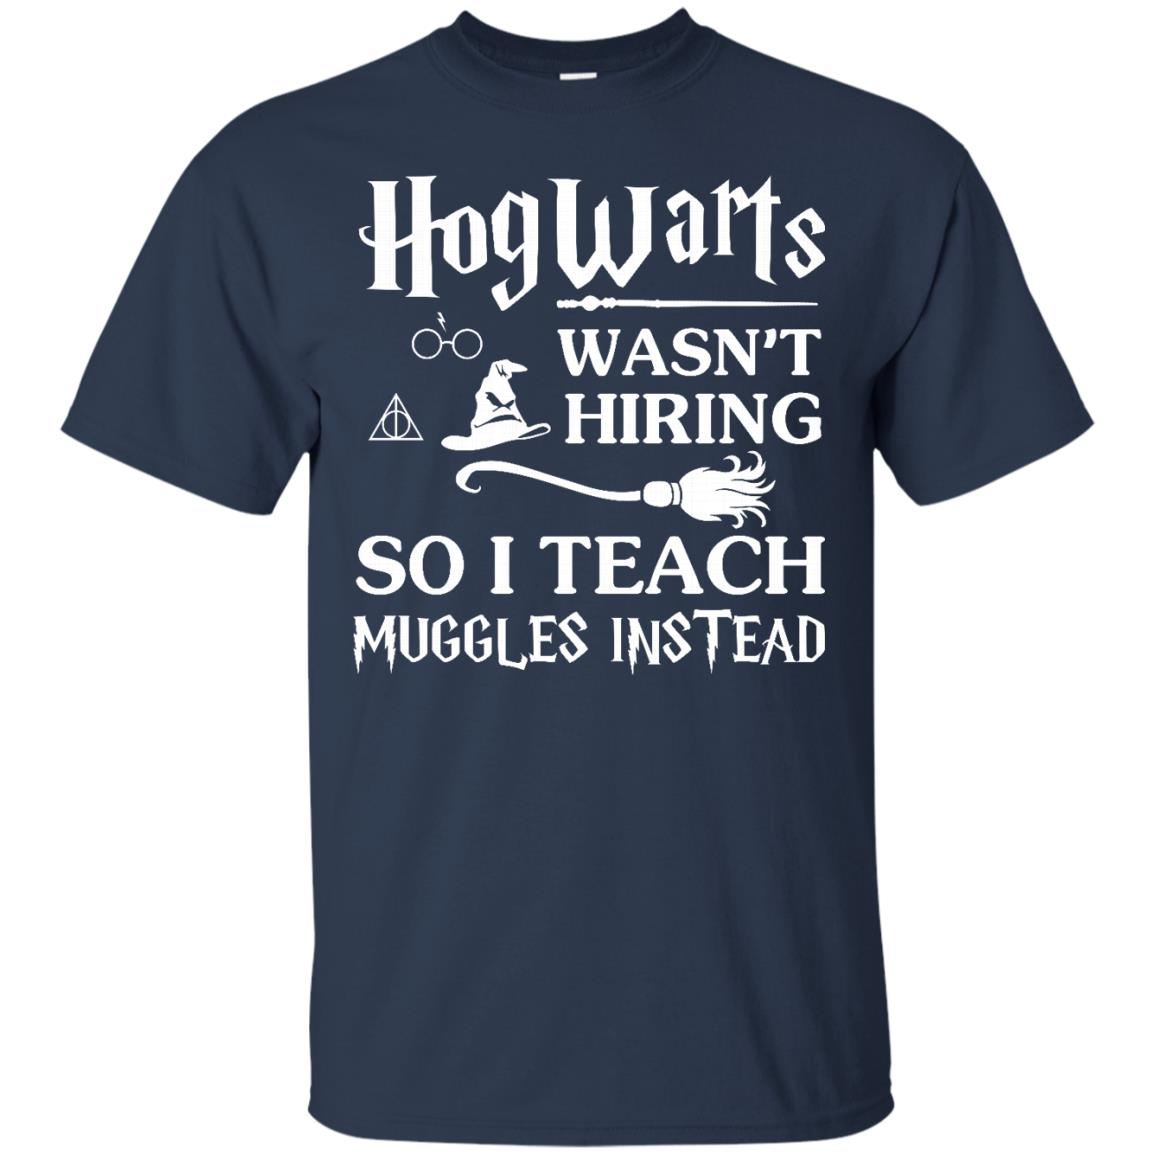 image 272px Hogwarts Wasn't Hiring So I Teach Muggles Instead T Shirts, Hoodies, Tank Top